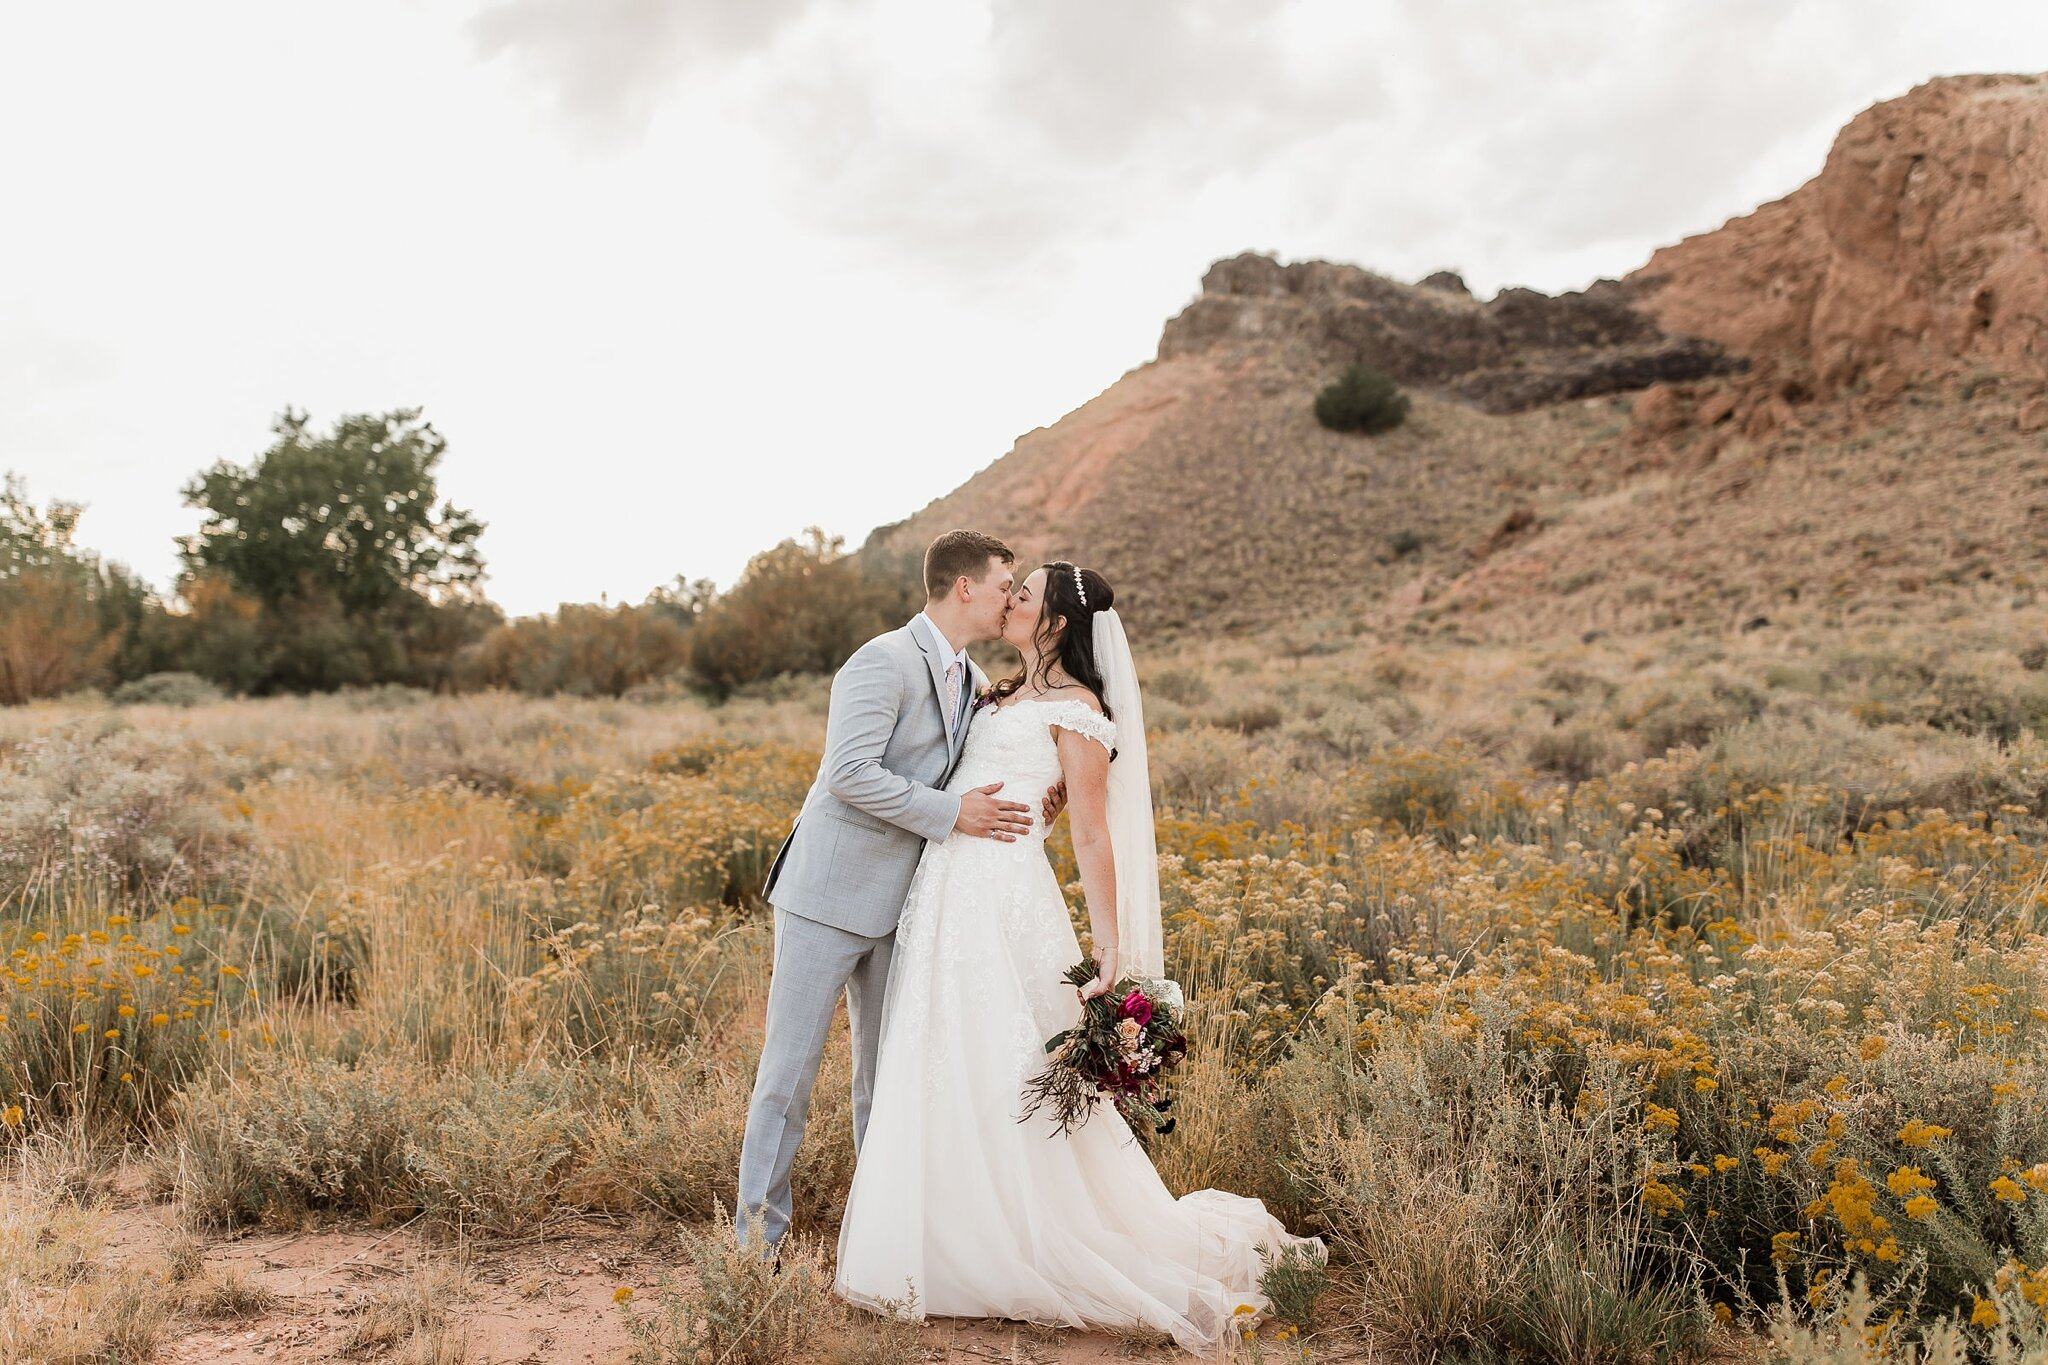 Alicia+lucia+photography+-+albuquerque+wedding+photographer+-+santa+fe+wedding+photography+-+new+mexico+wedding+photographer+-+new+mexico+wedding+-+wedding+-+bridal+gown+-+wedding+gown+-+ballgown+wedding+gown+-+ballgown+bridal+gown_0059.jpg